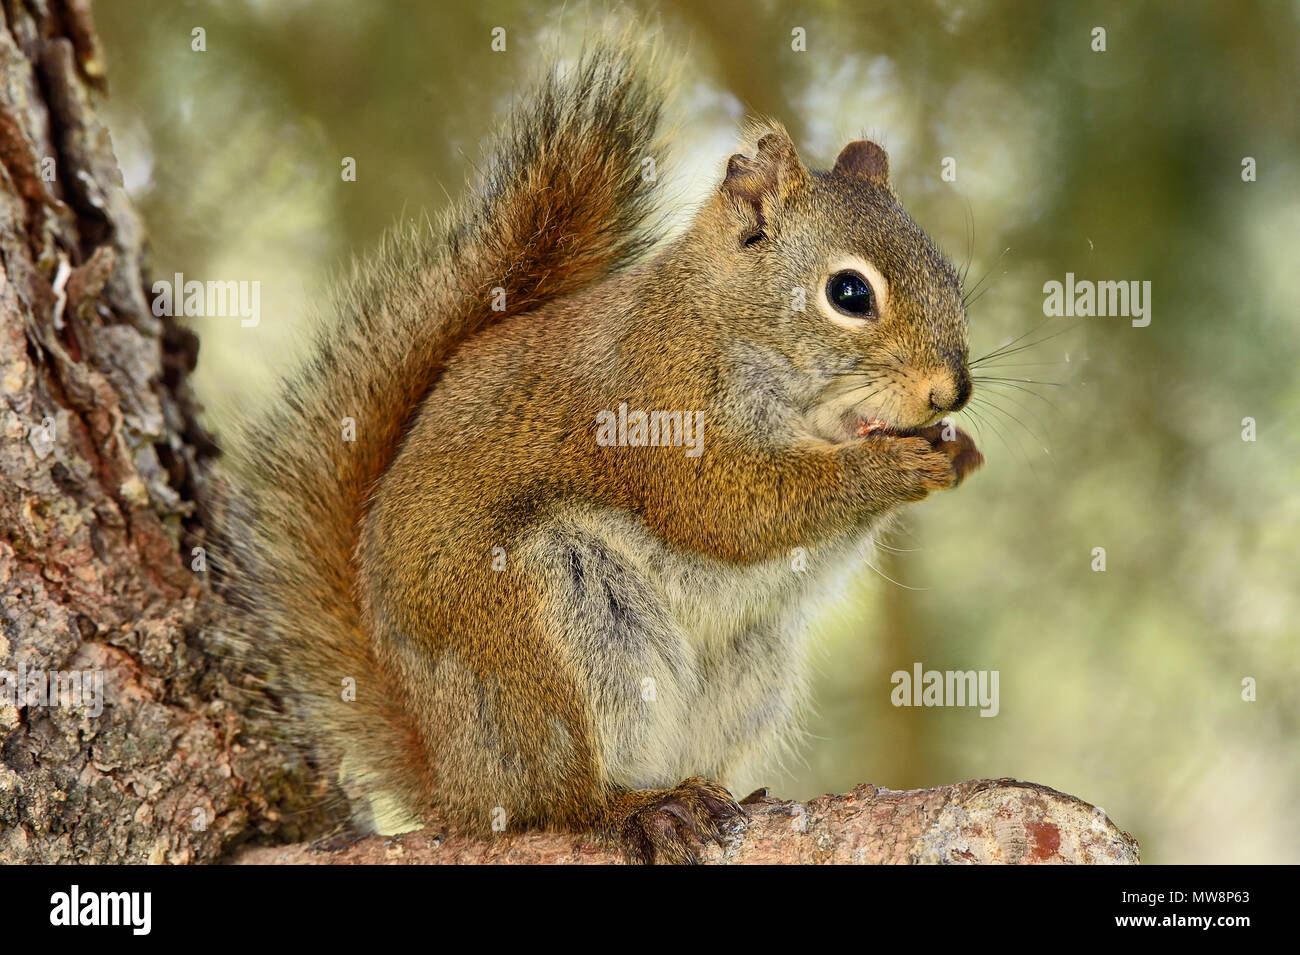 A wild red squirrel 'Tamiasciurus hudsonicus'; sitting on branch of a spruce tree using his front paws to hold something that he is eating  in rural A - Stock Image